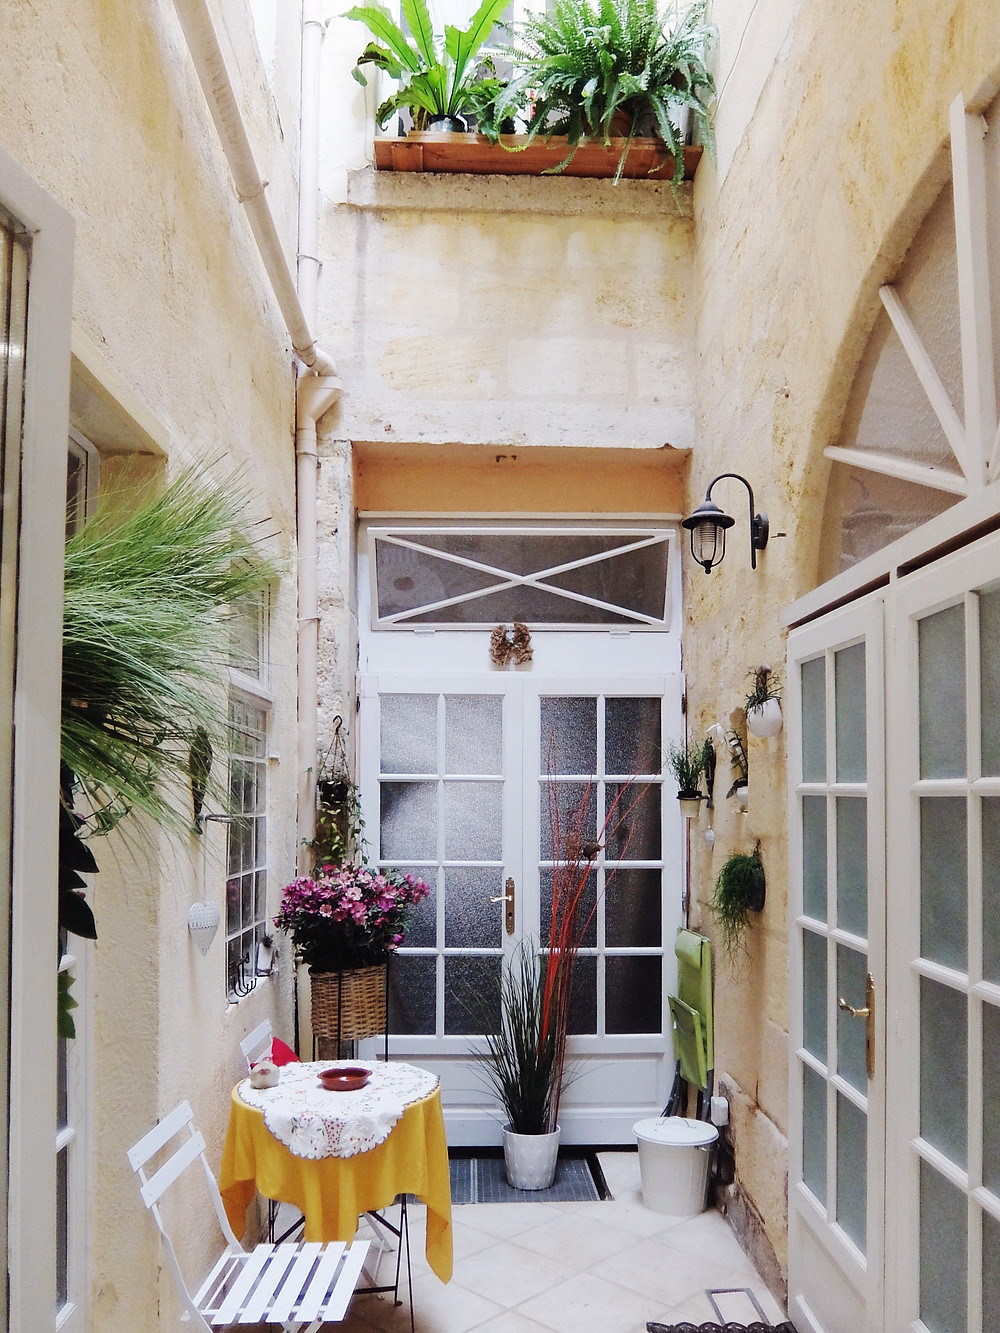 The tiny courtyard of our AirBnB